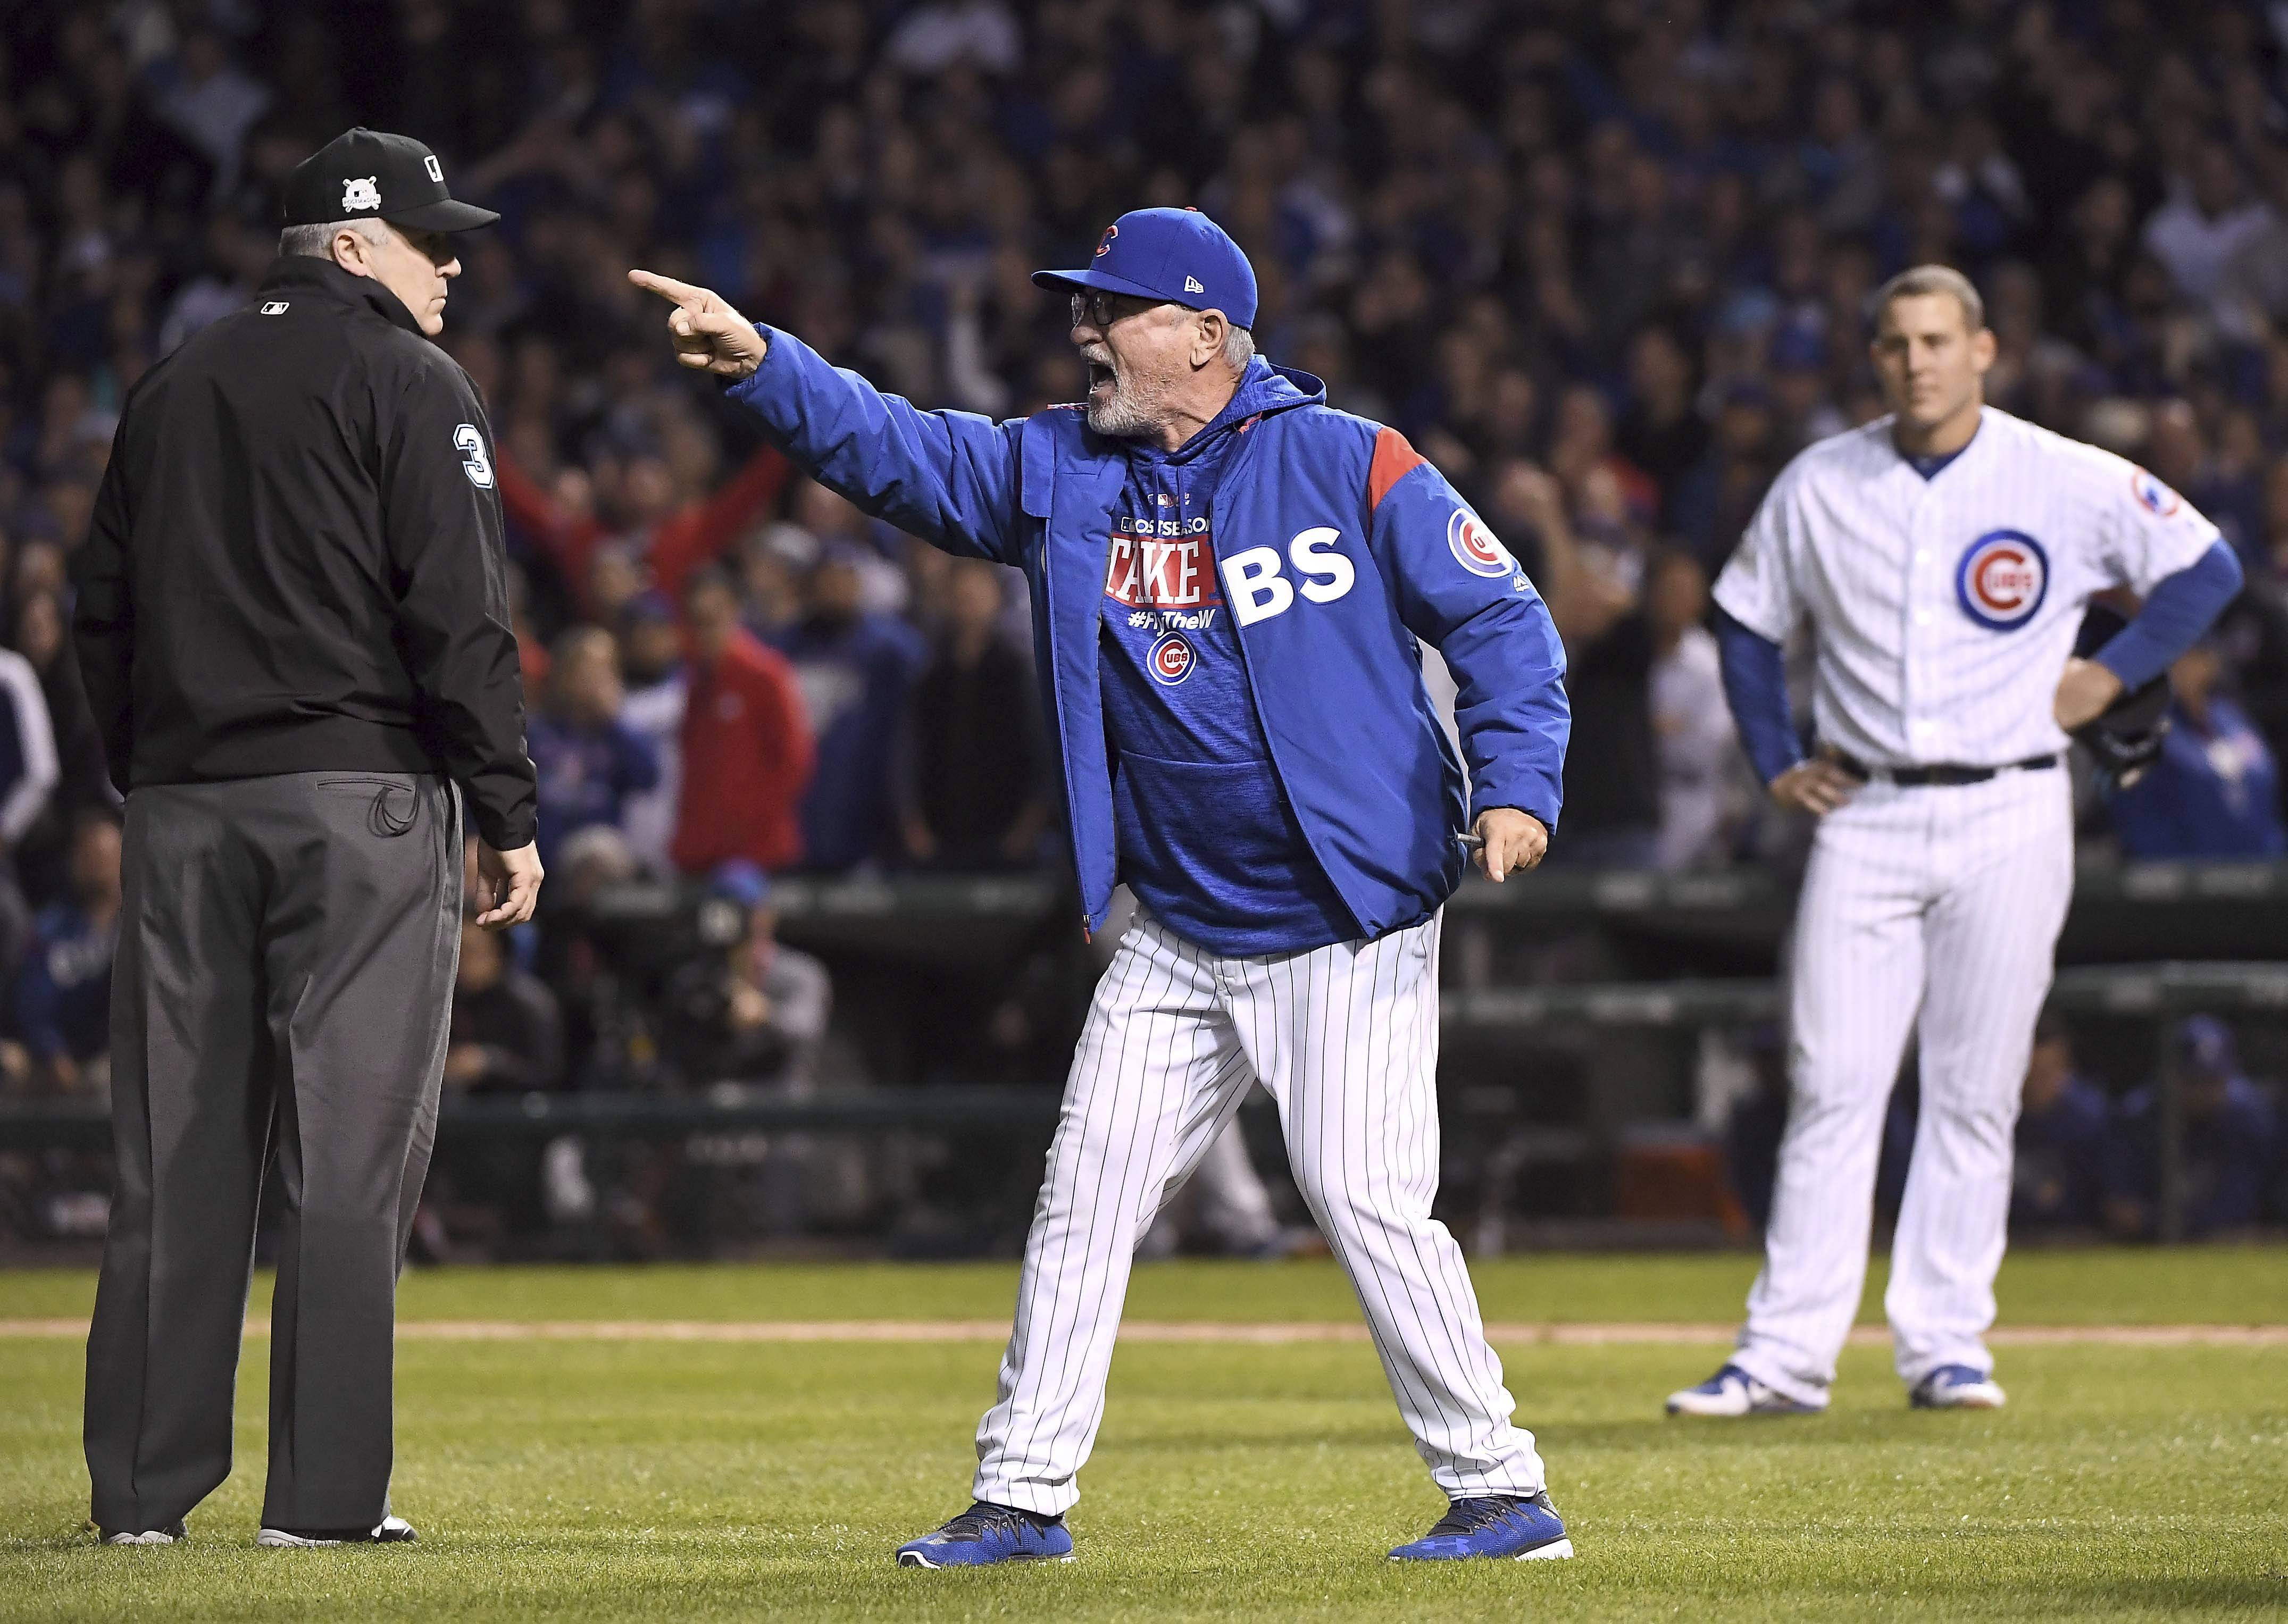 Chicago Cubs manager Joe Maddon argues a call during the eighth inning in Game 4 of the NLCS at Wrigley Field.